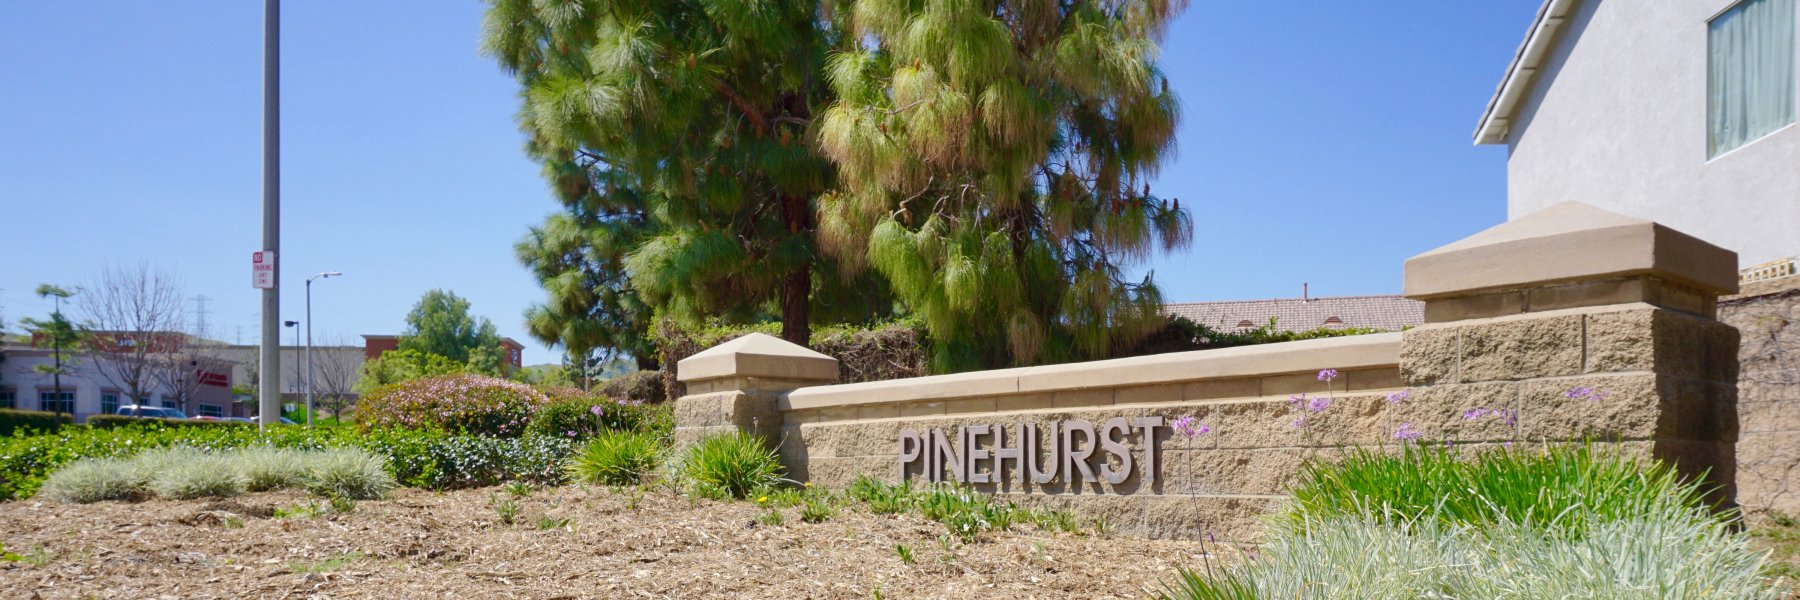 Pinehurst is a community of homes in Chino Hills California